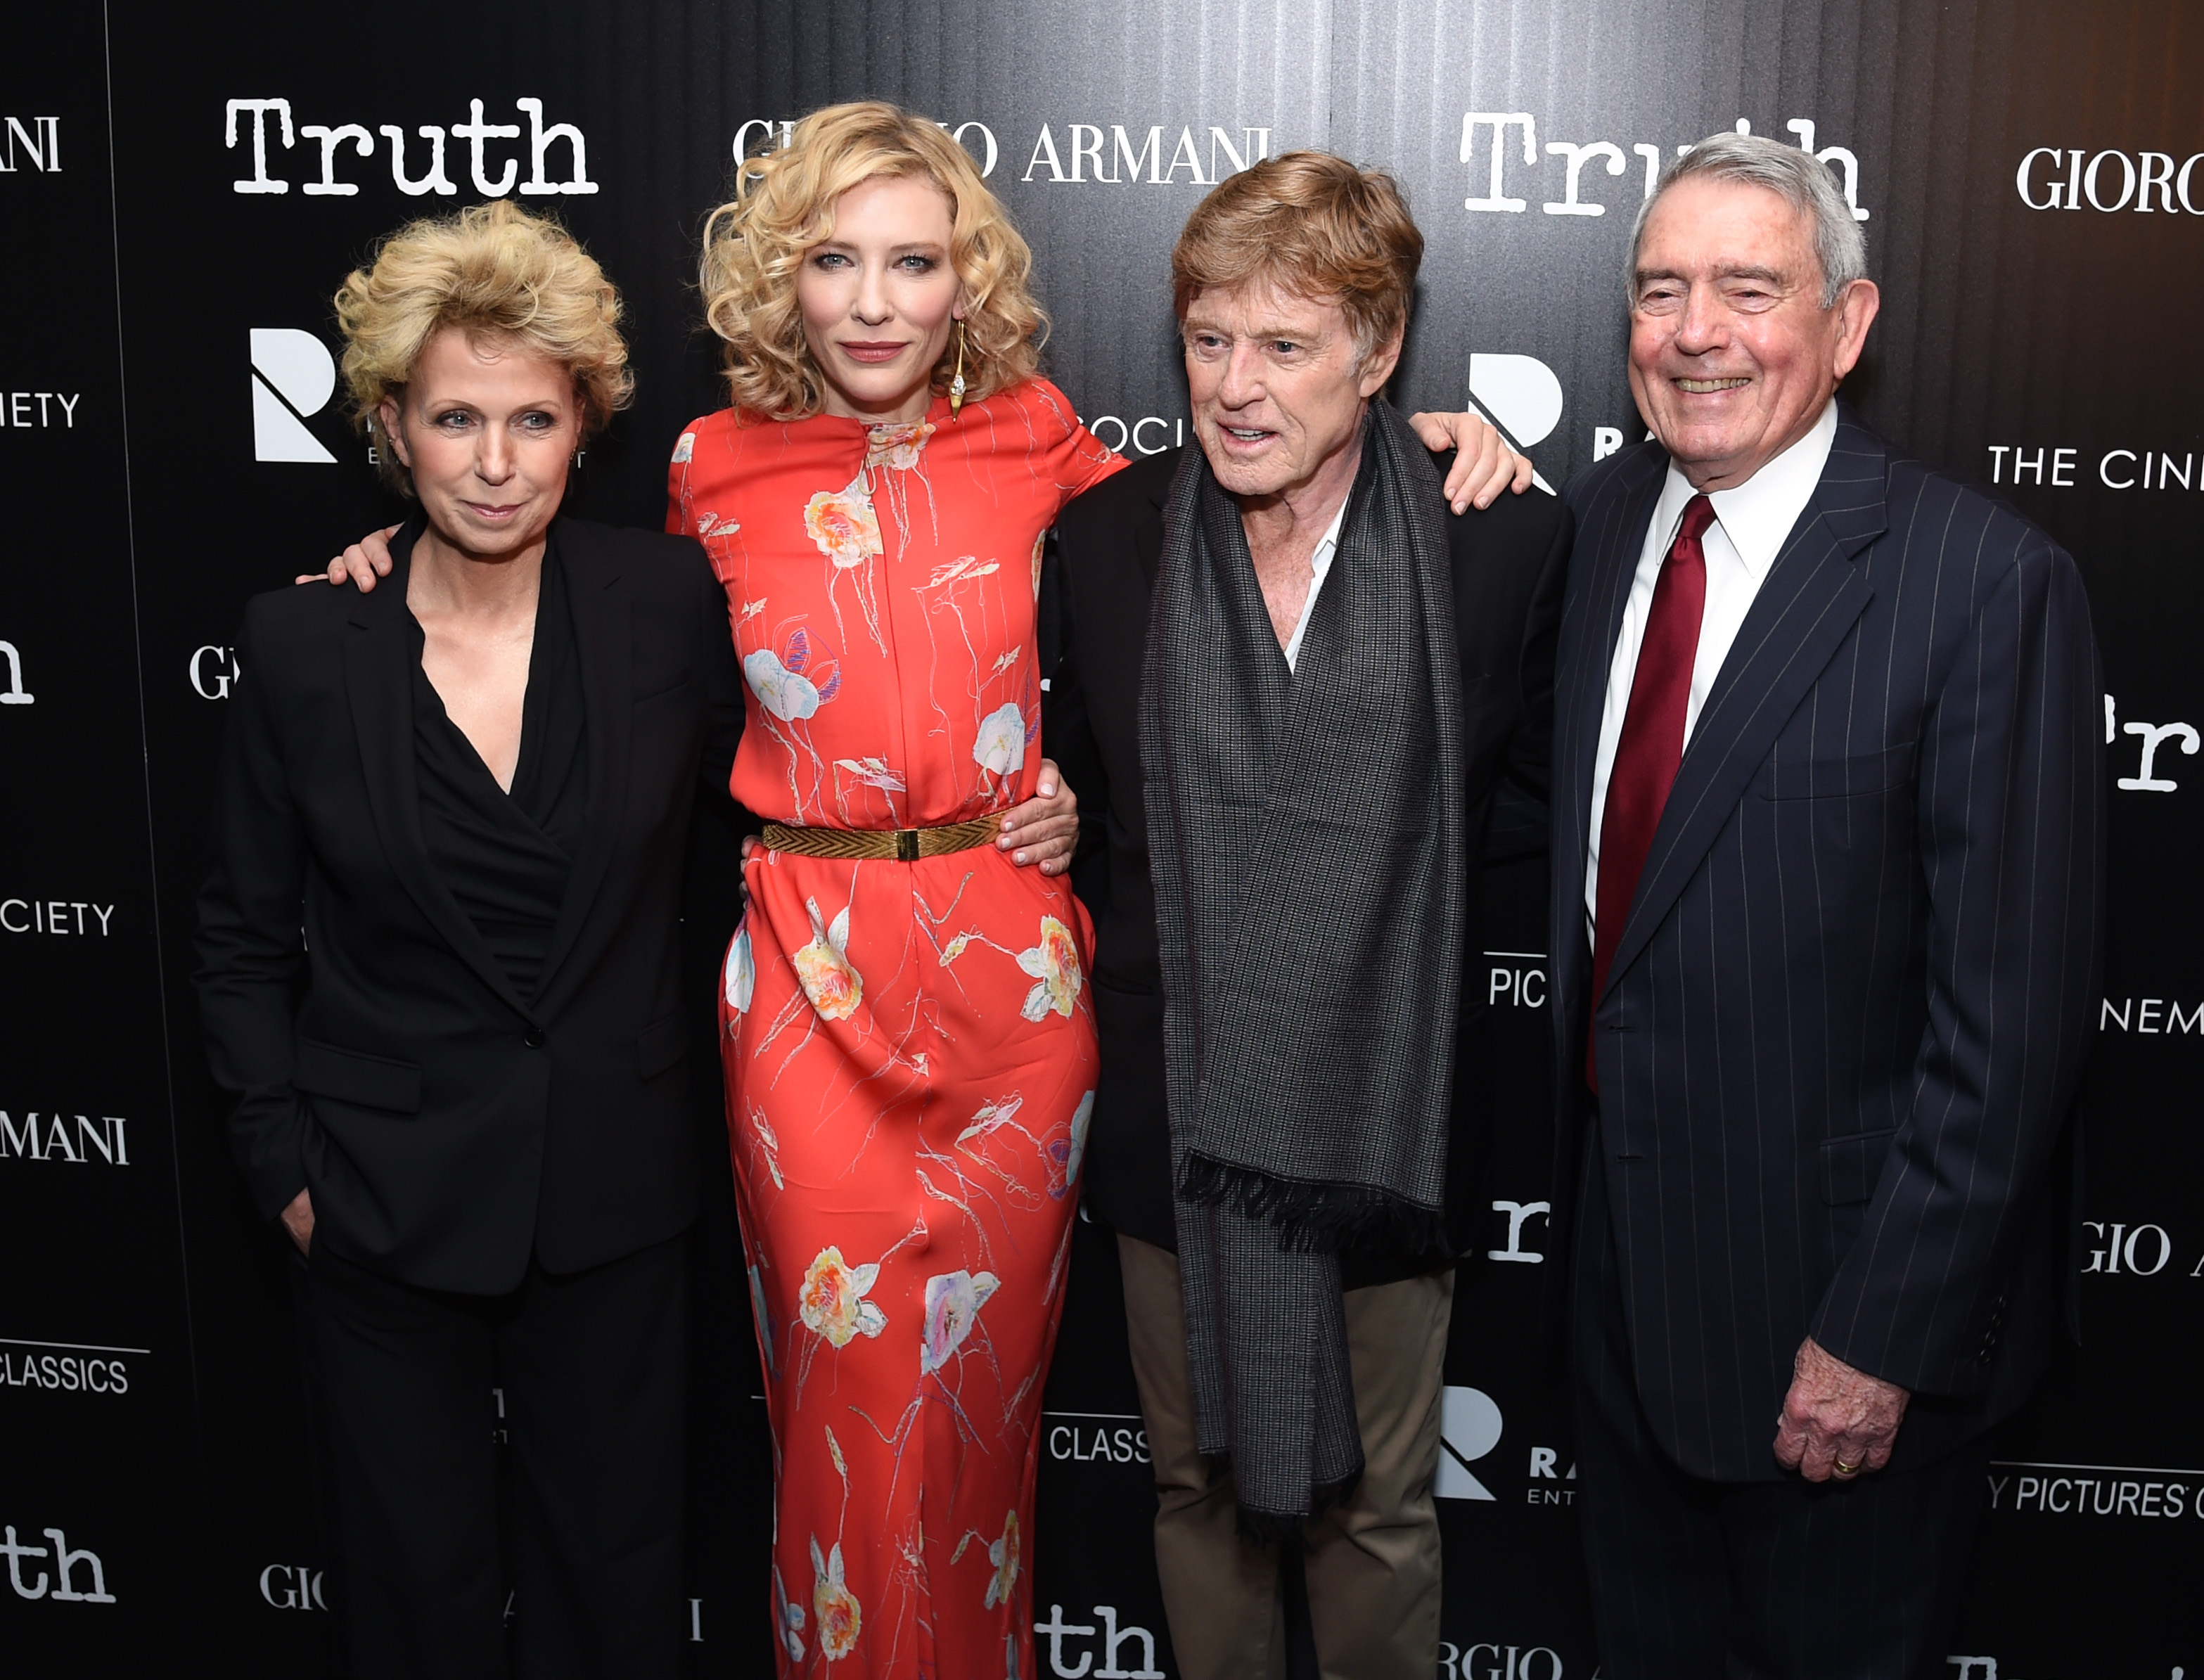 Giorgio Armani hosts 'Truth' film screening at the Cinema Society, New York, America - 07 Oct 2015